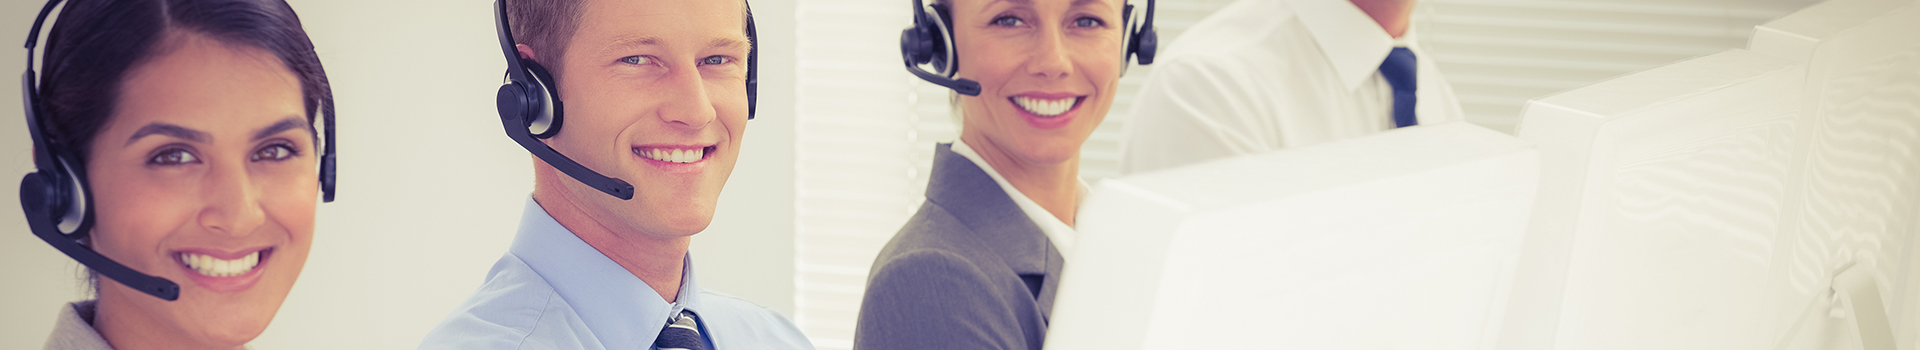 Customer Care Call Center Services